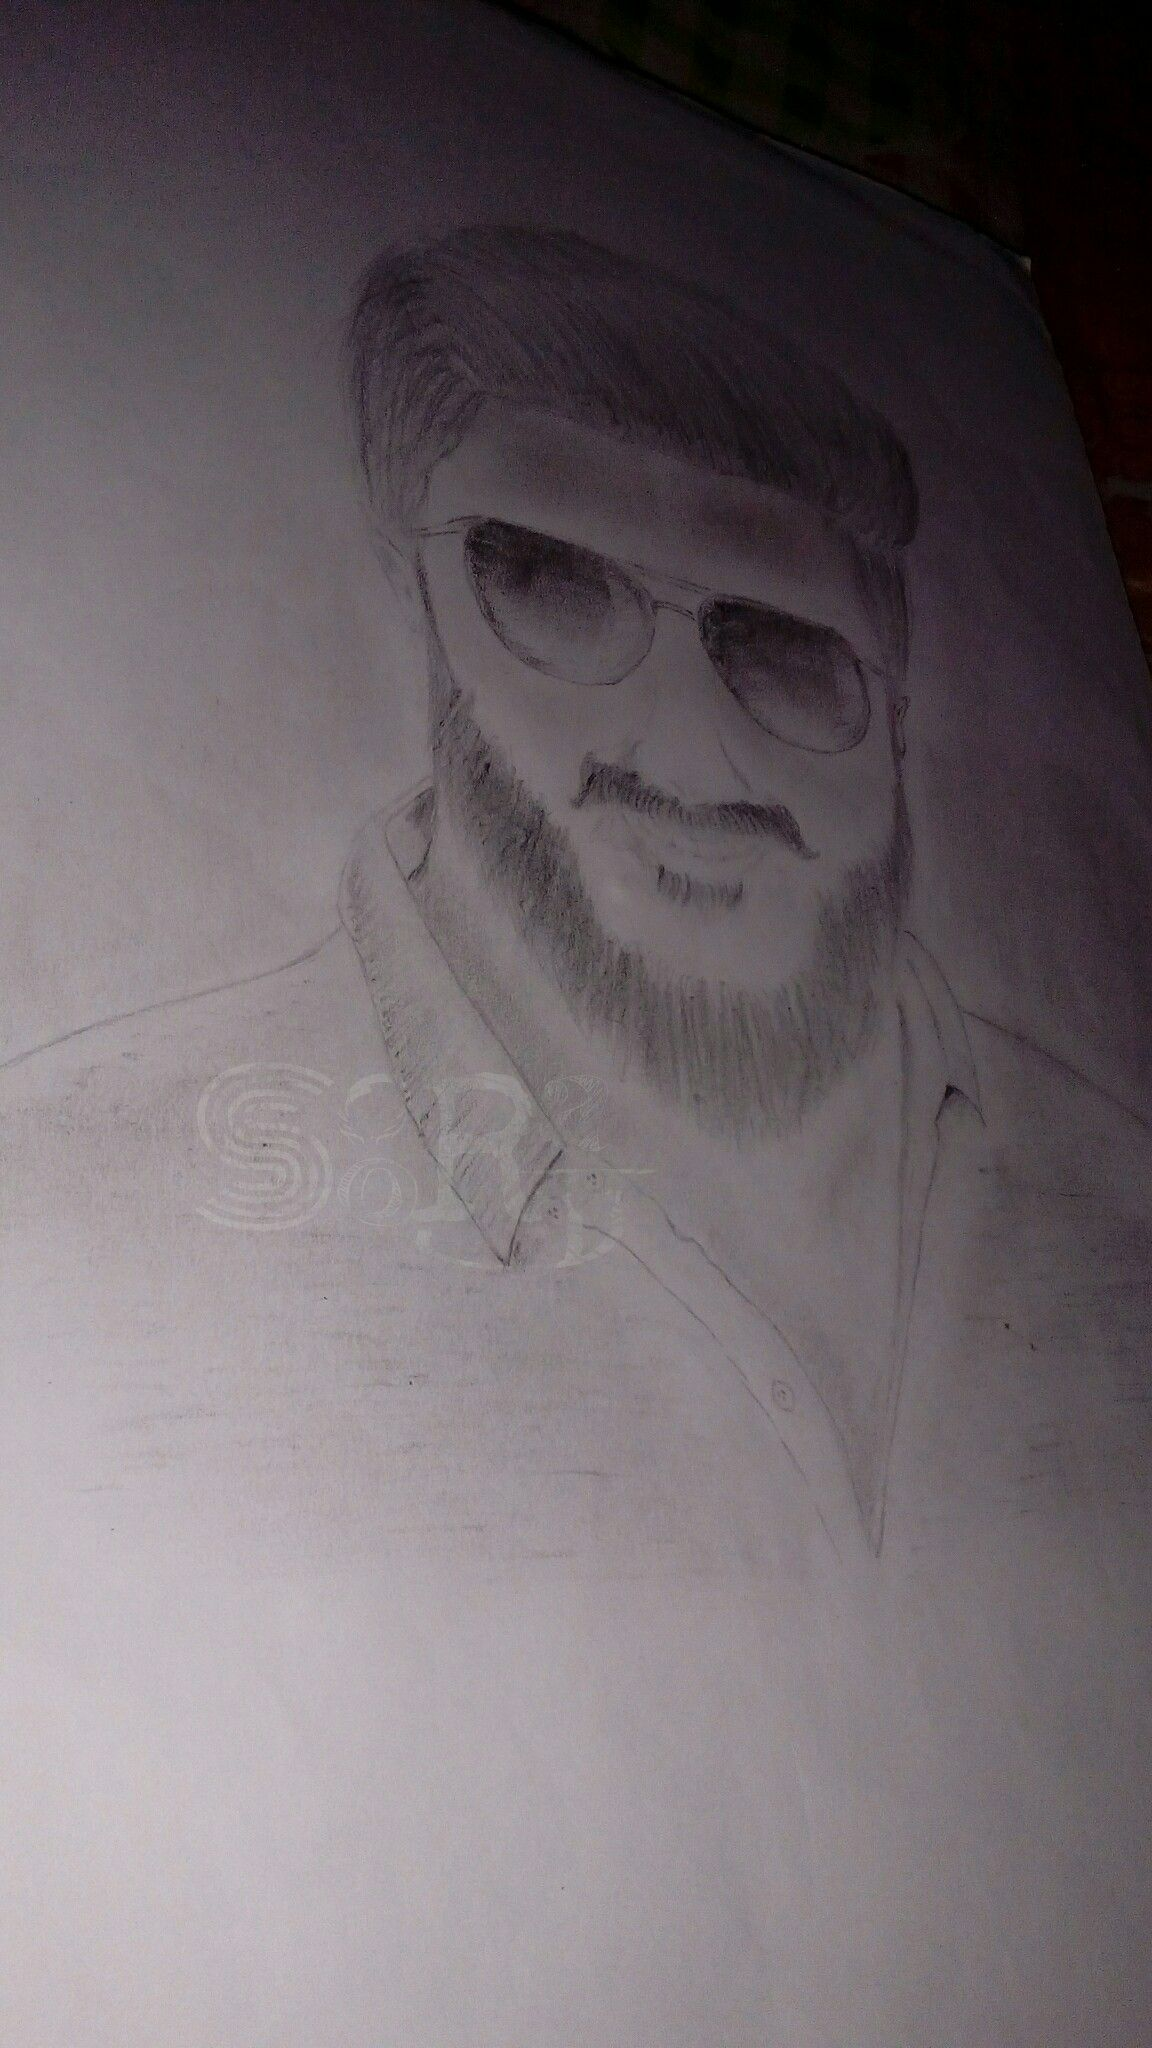 Dulquer salmaan draw dq drawings sketches art